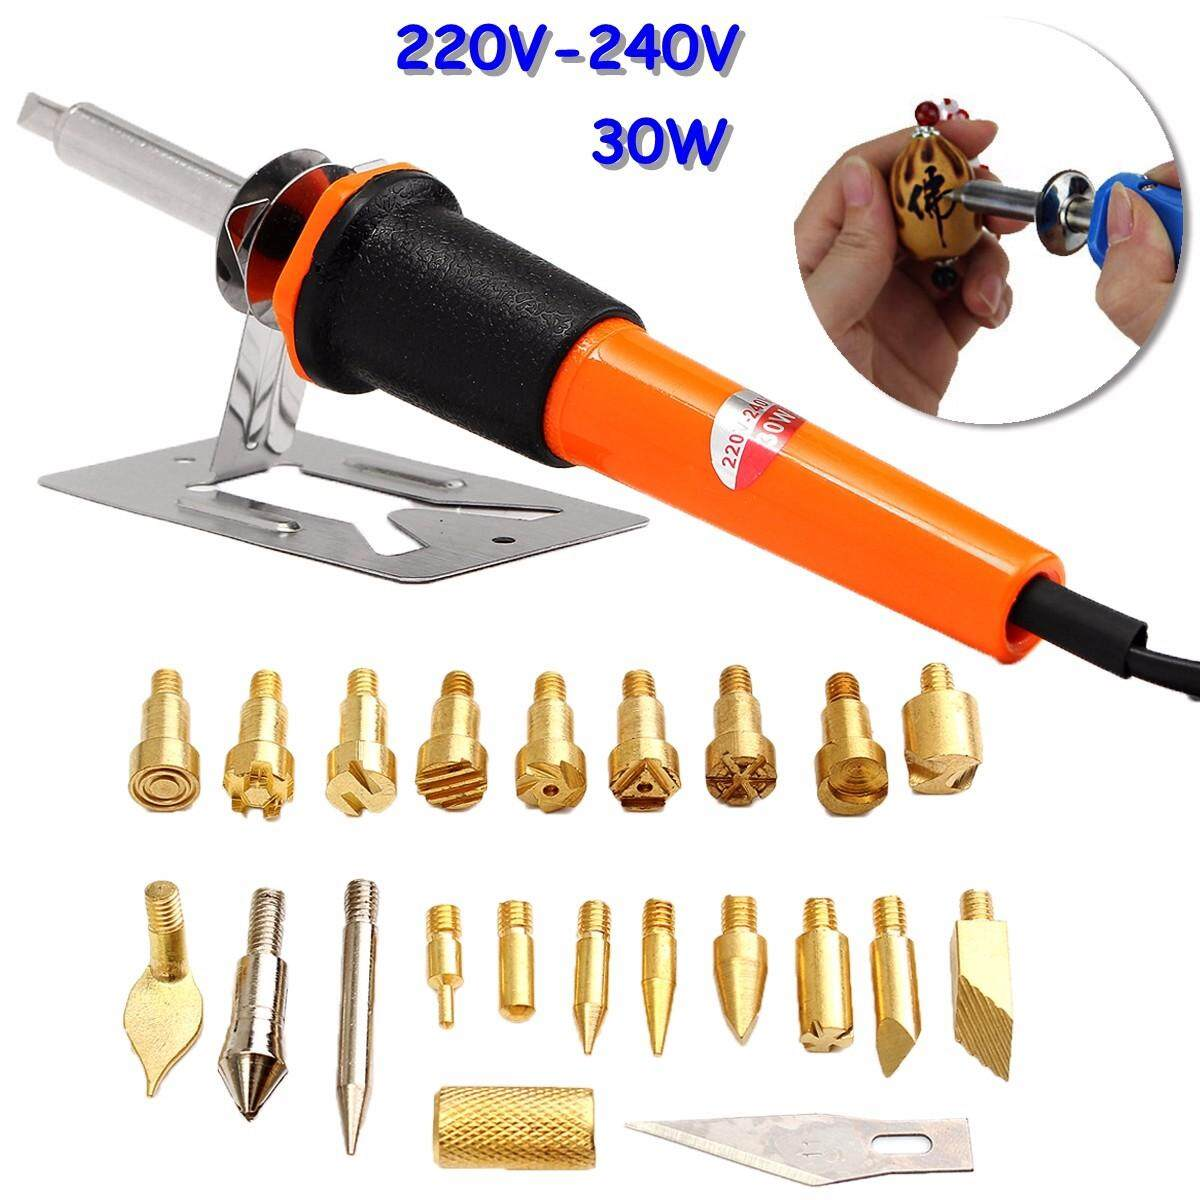 24pcs Wood Burning Pen Extra Tips and Stencils Soldering Iron Burner Hobby Kit